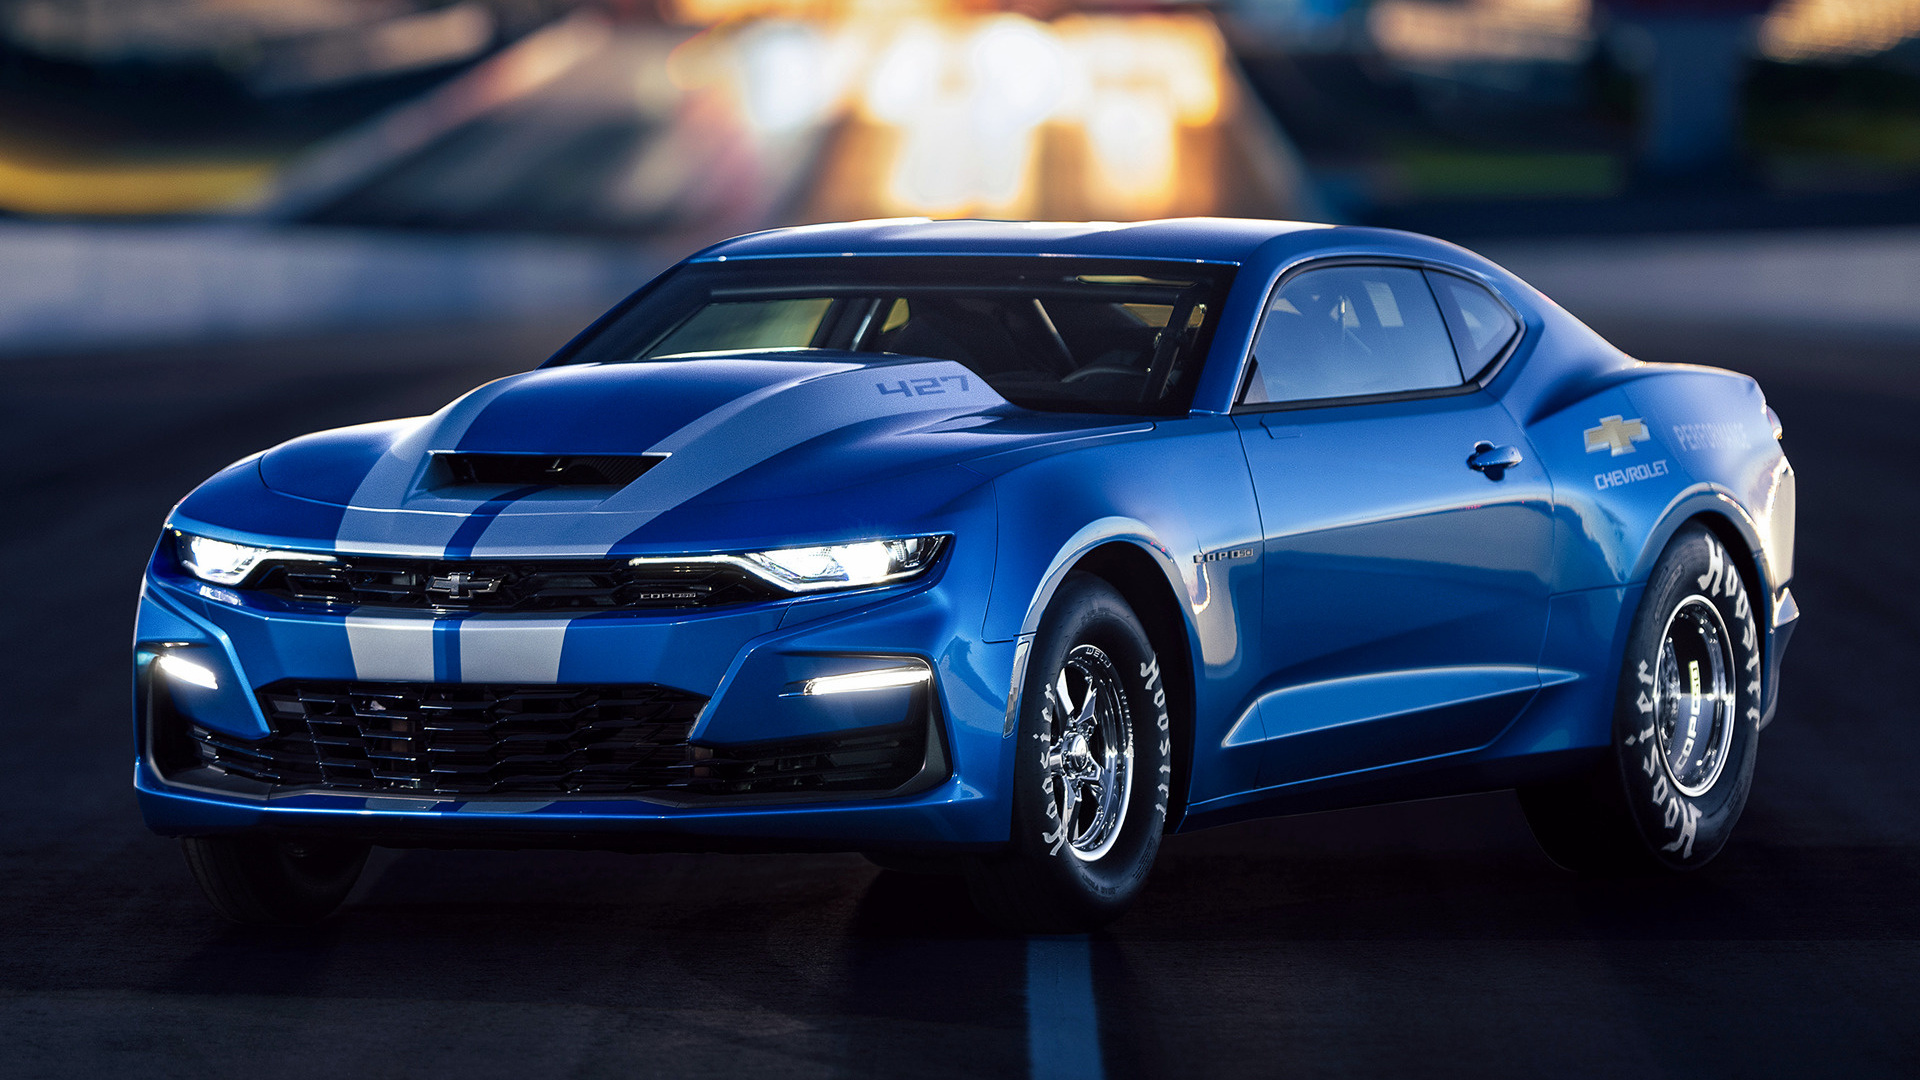 2019 Chevrolet COPO Camaro 50th Anniversary - Wallpapers ...